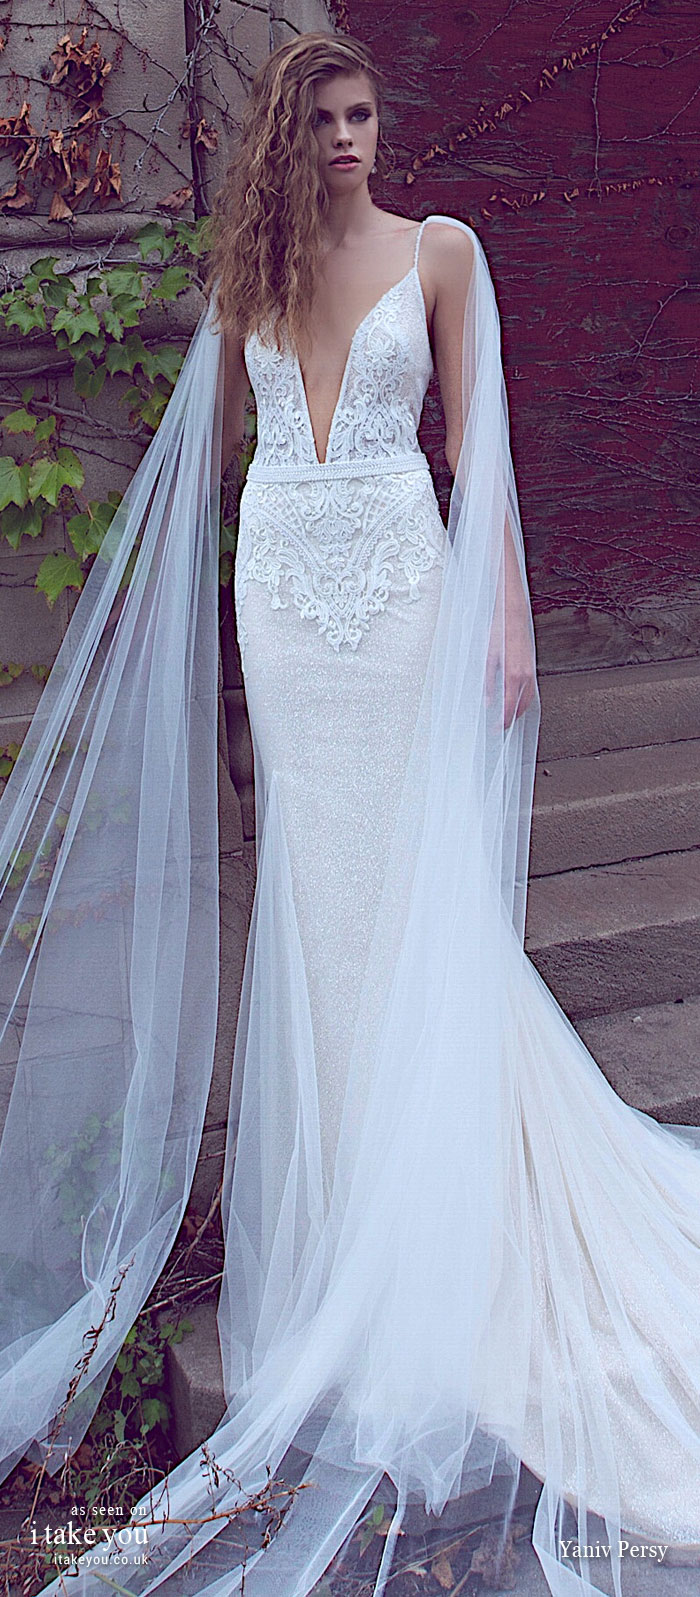 Yaniv Persy Wedding Dress 2020 – Lavish Bridal Collection